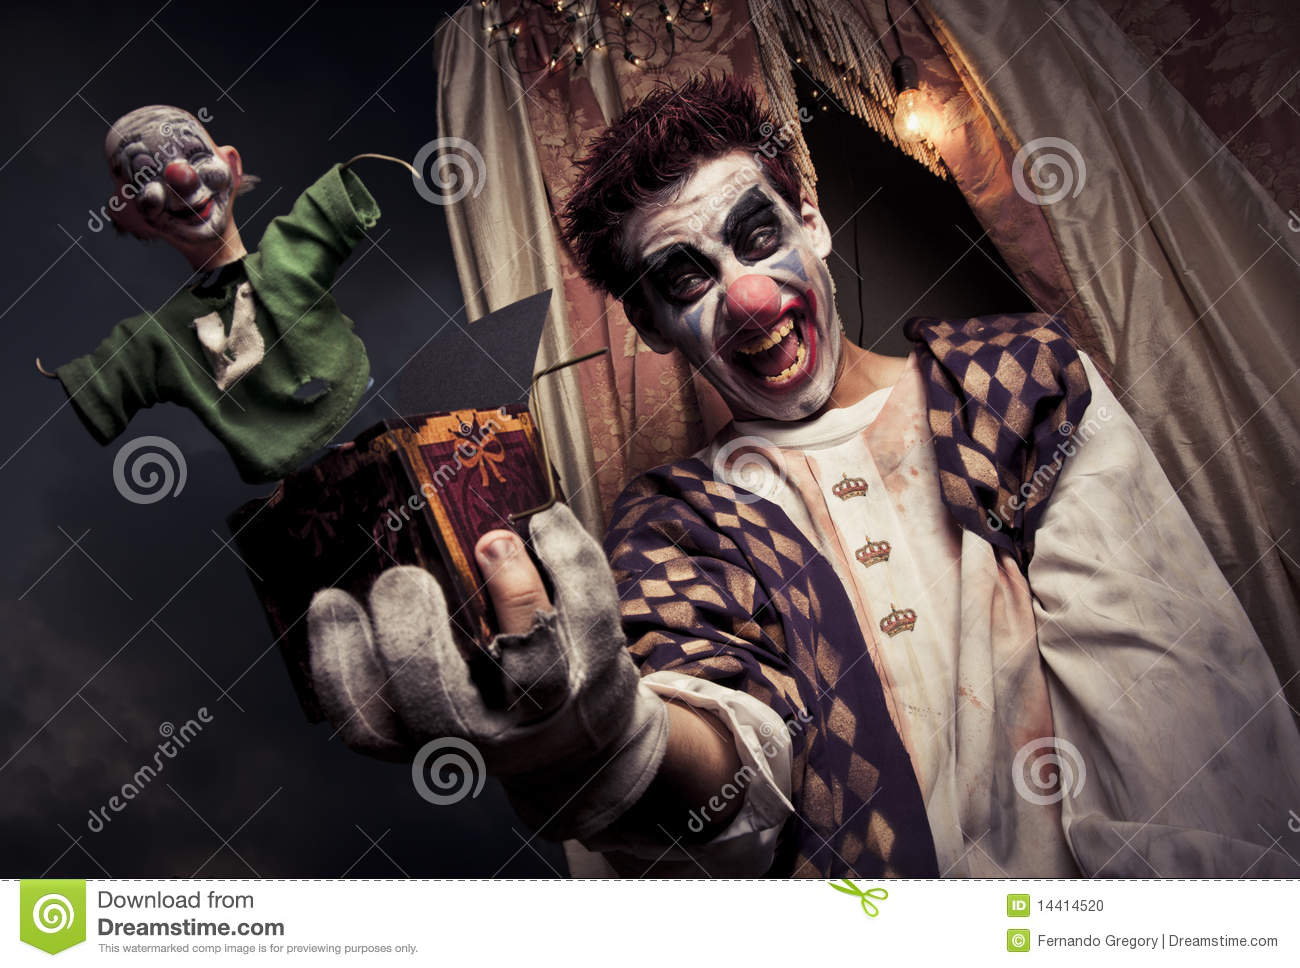 Royalty-Free Stock Photo & Scary Clown Holding A Jack-in-the-box Toy Stock Photo - Image ... Aboutintivar.Com